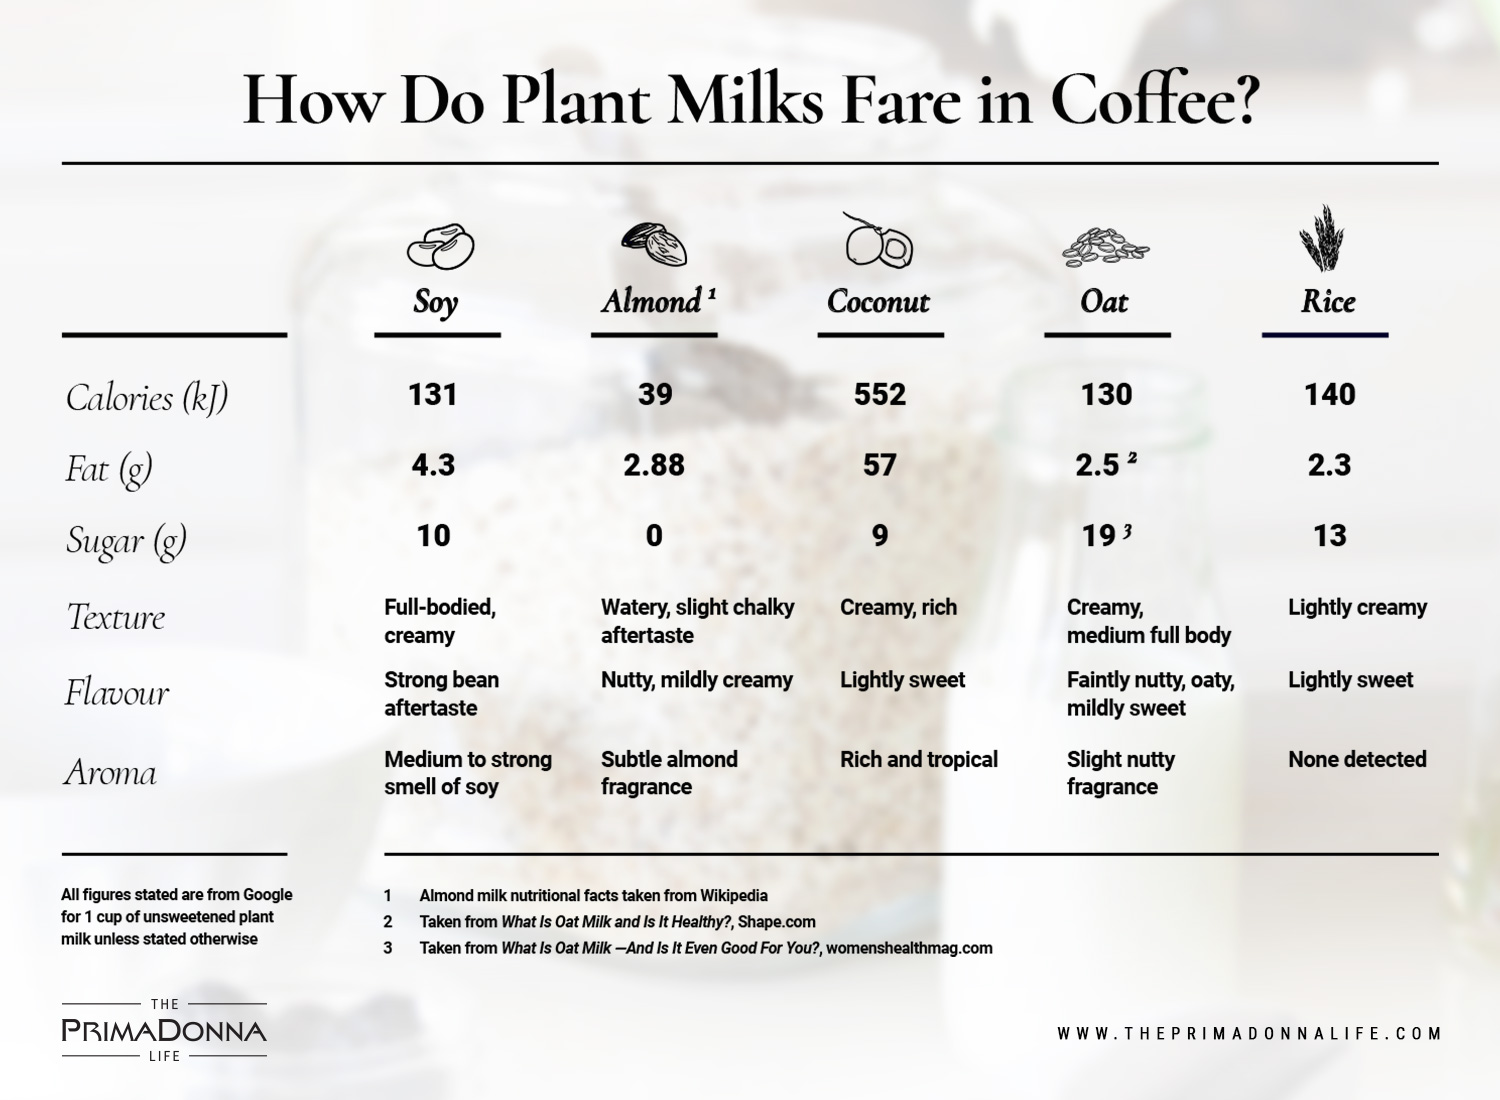 An infographic of nutritional facts for various plant-based milk